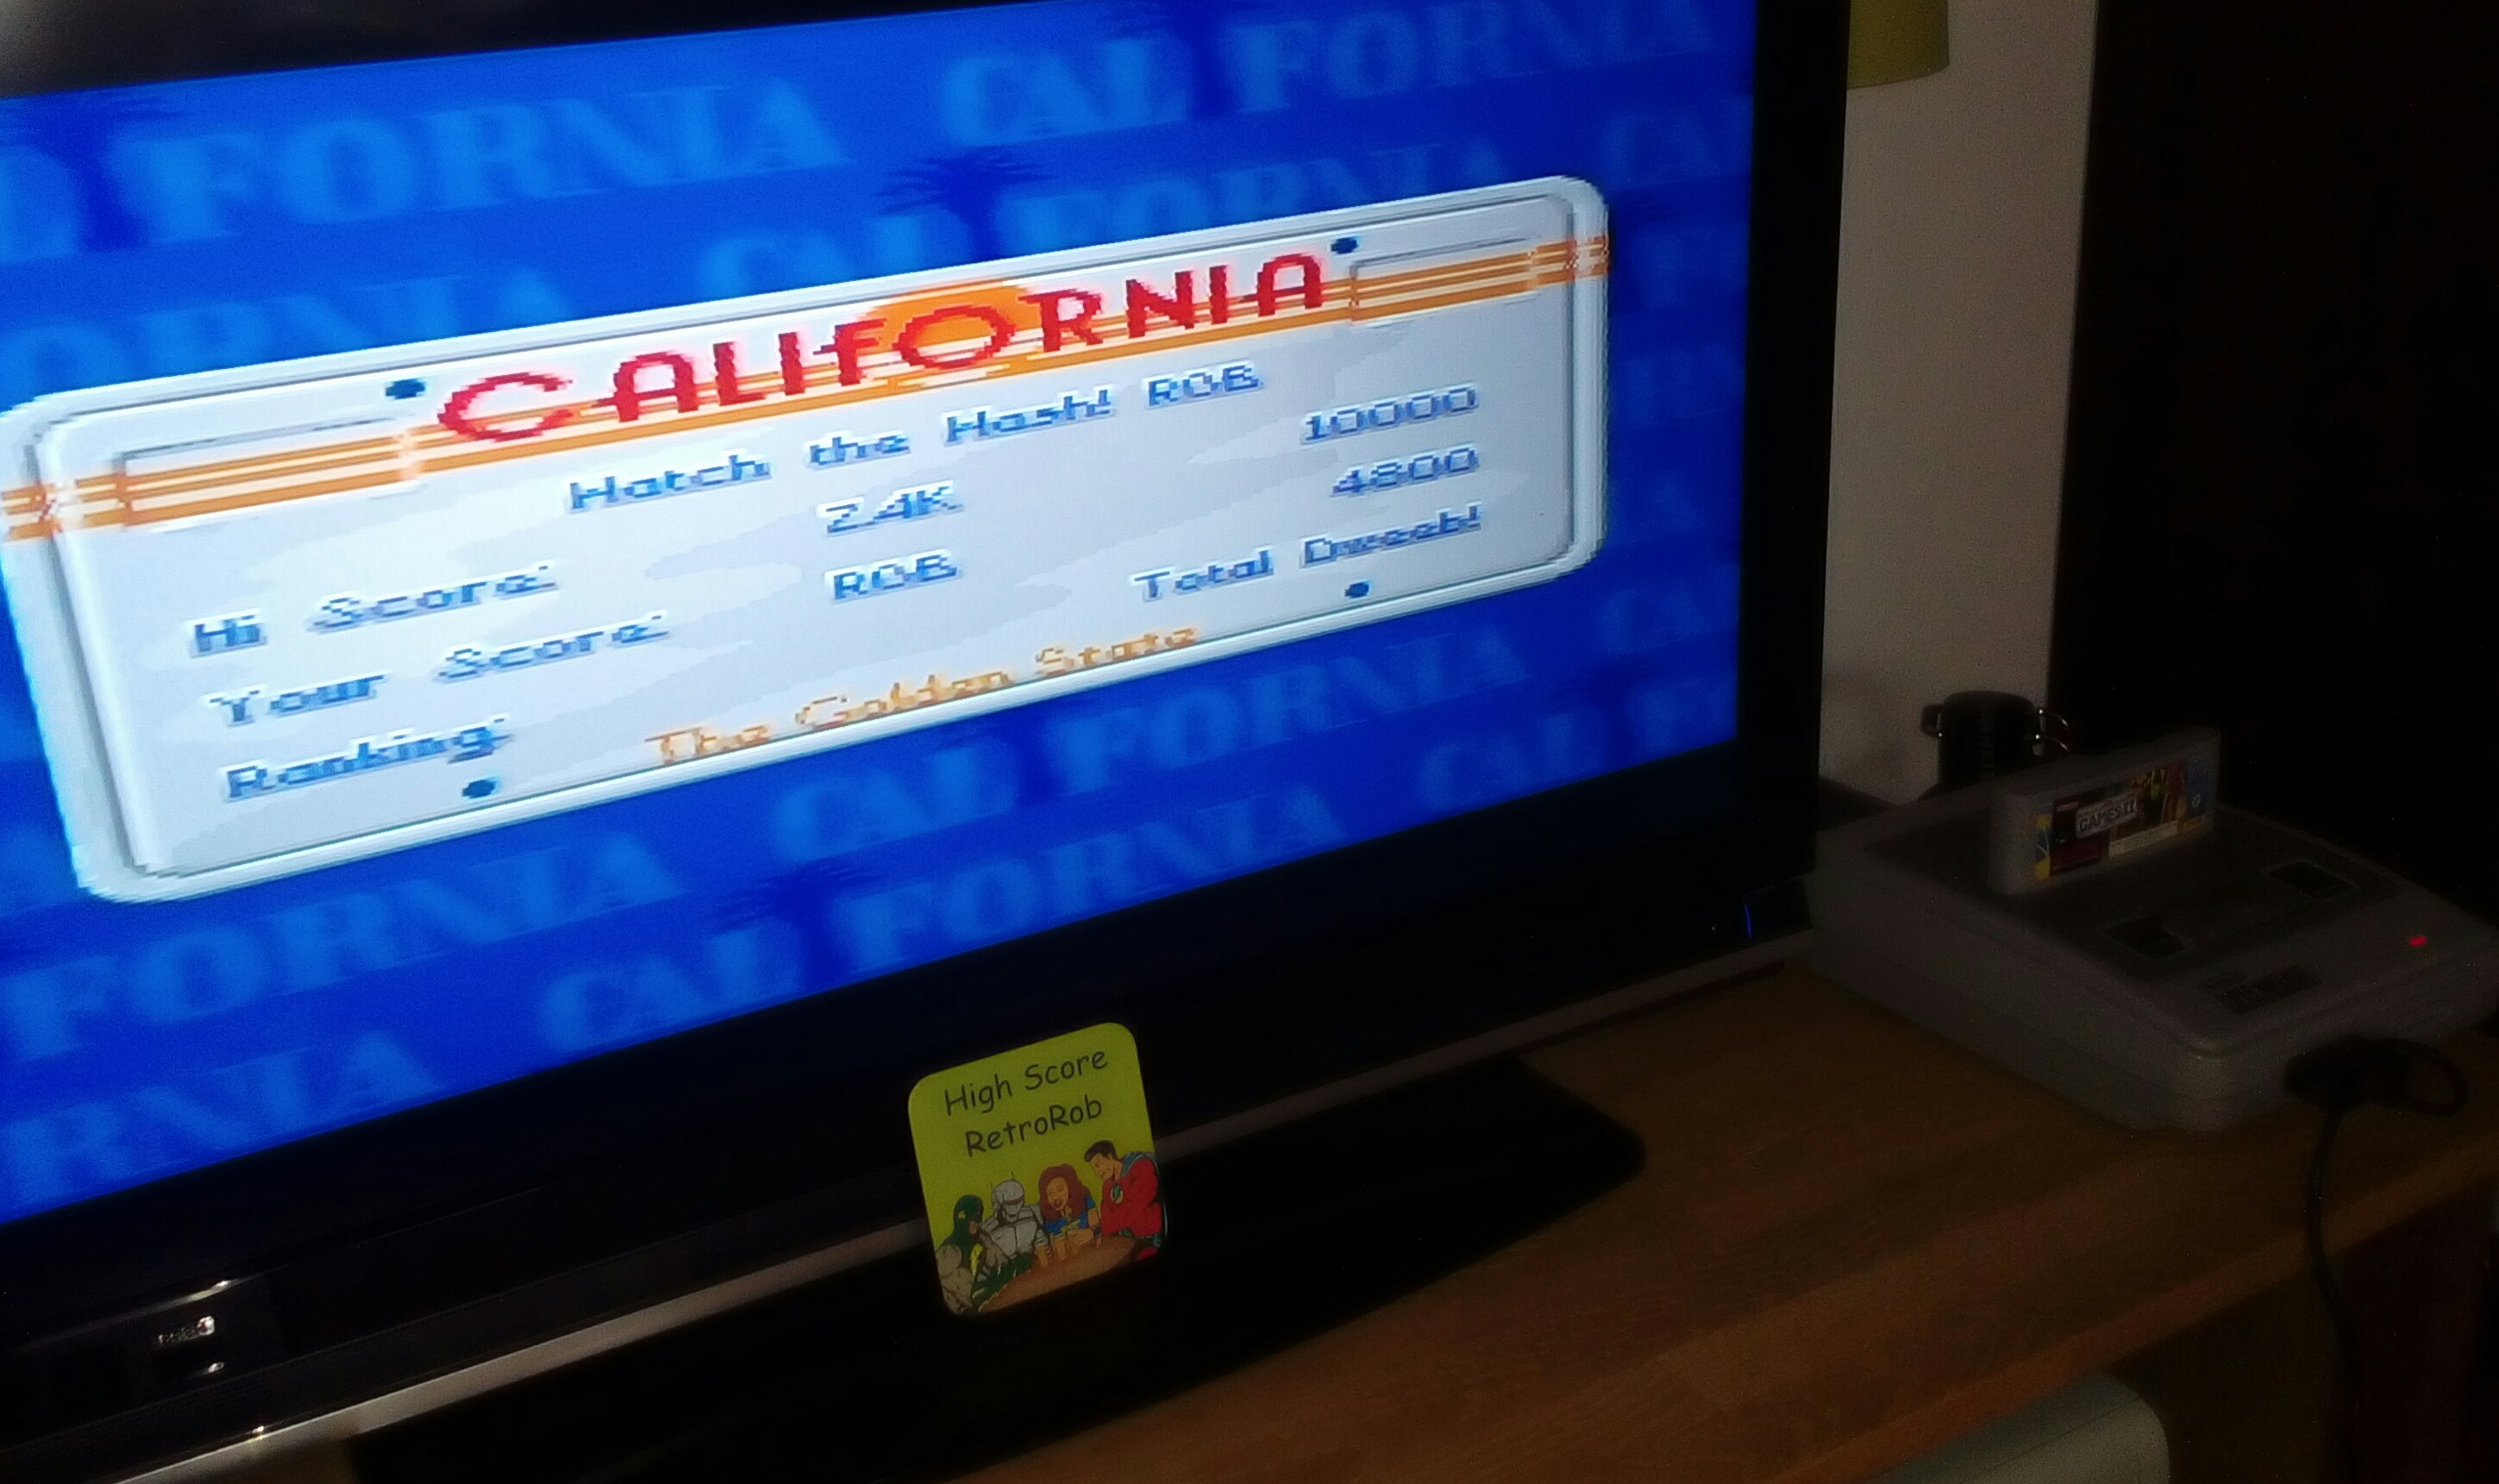 RetroRob: California Games II [Bodyboarding] (SNES/Super Famicom) 4,800 points on 2018-06-11 12:21:53